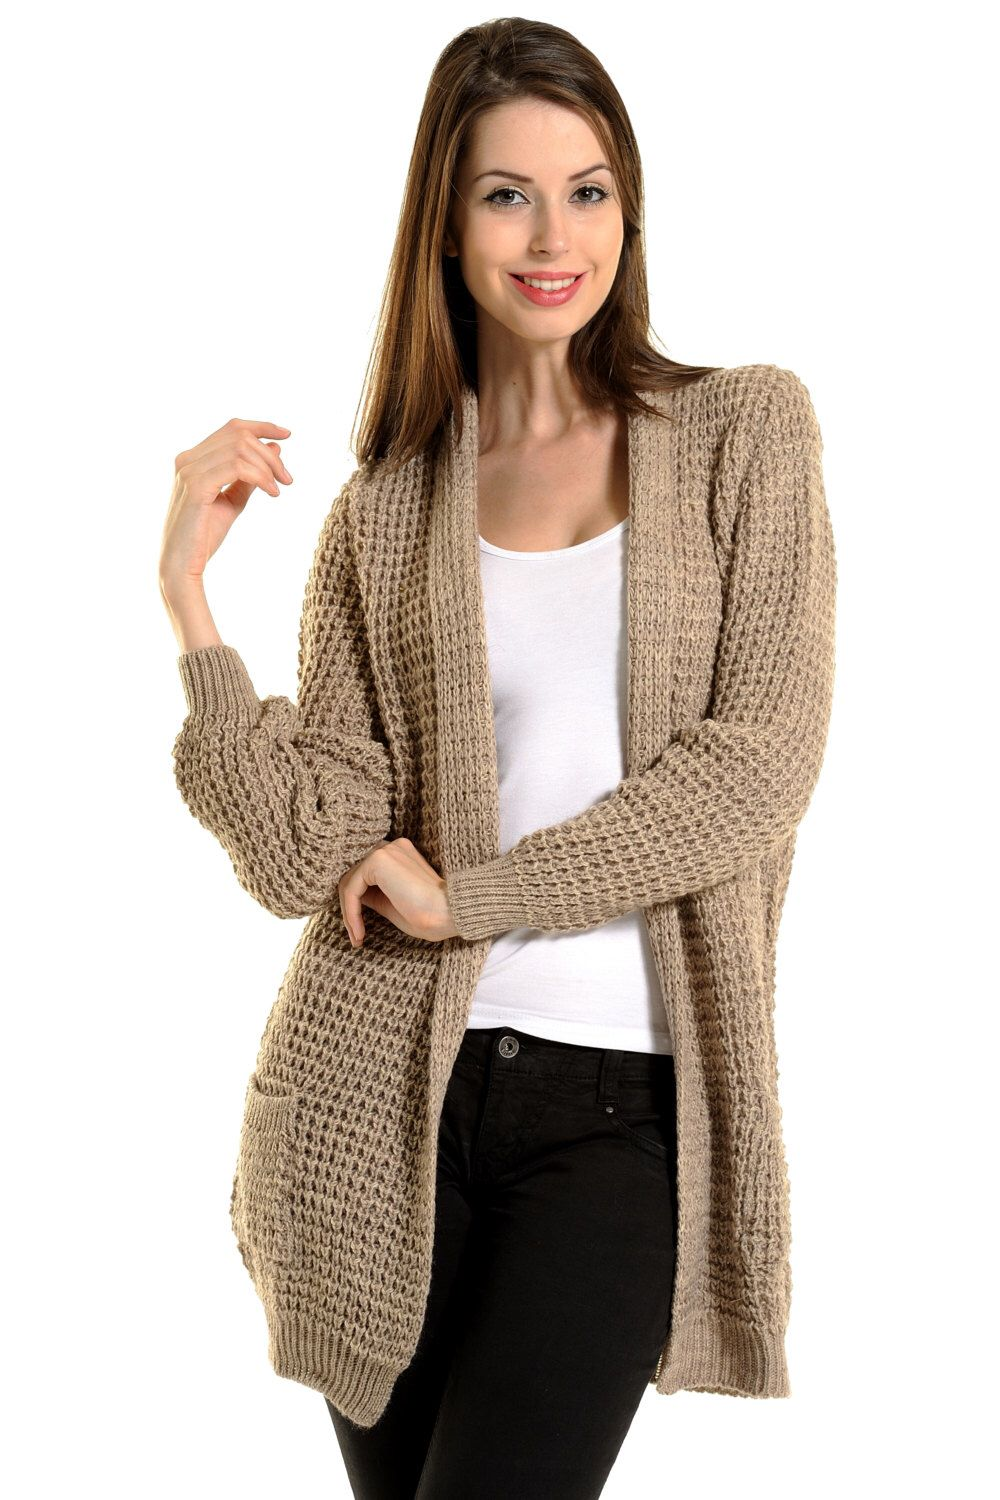 Mink Open cardigan long cardigan womens cardigan woman knit ...